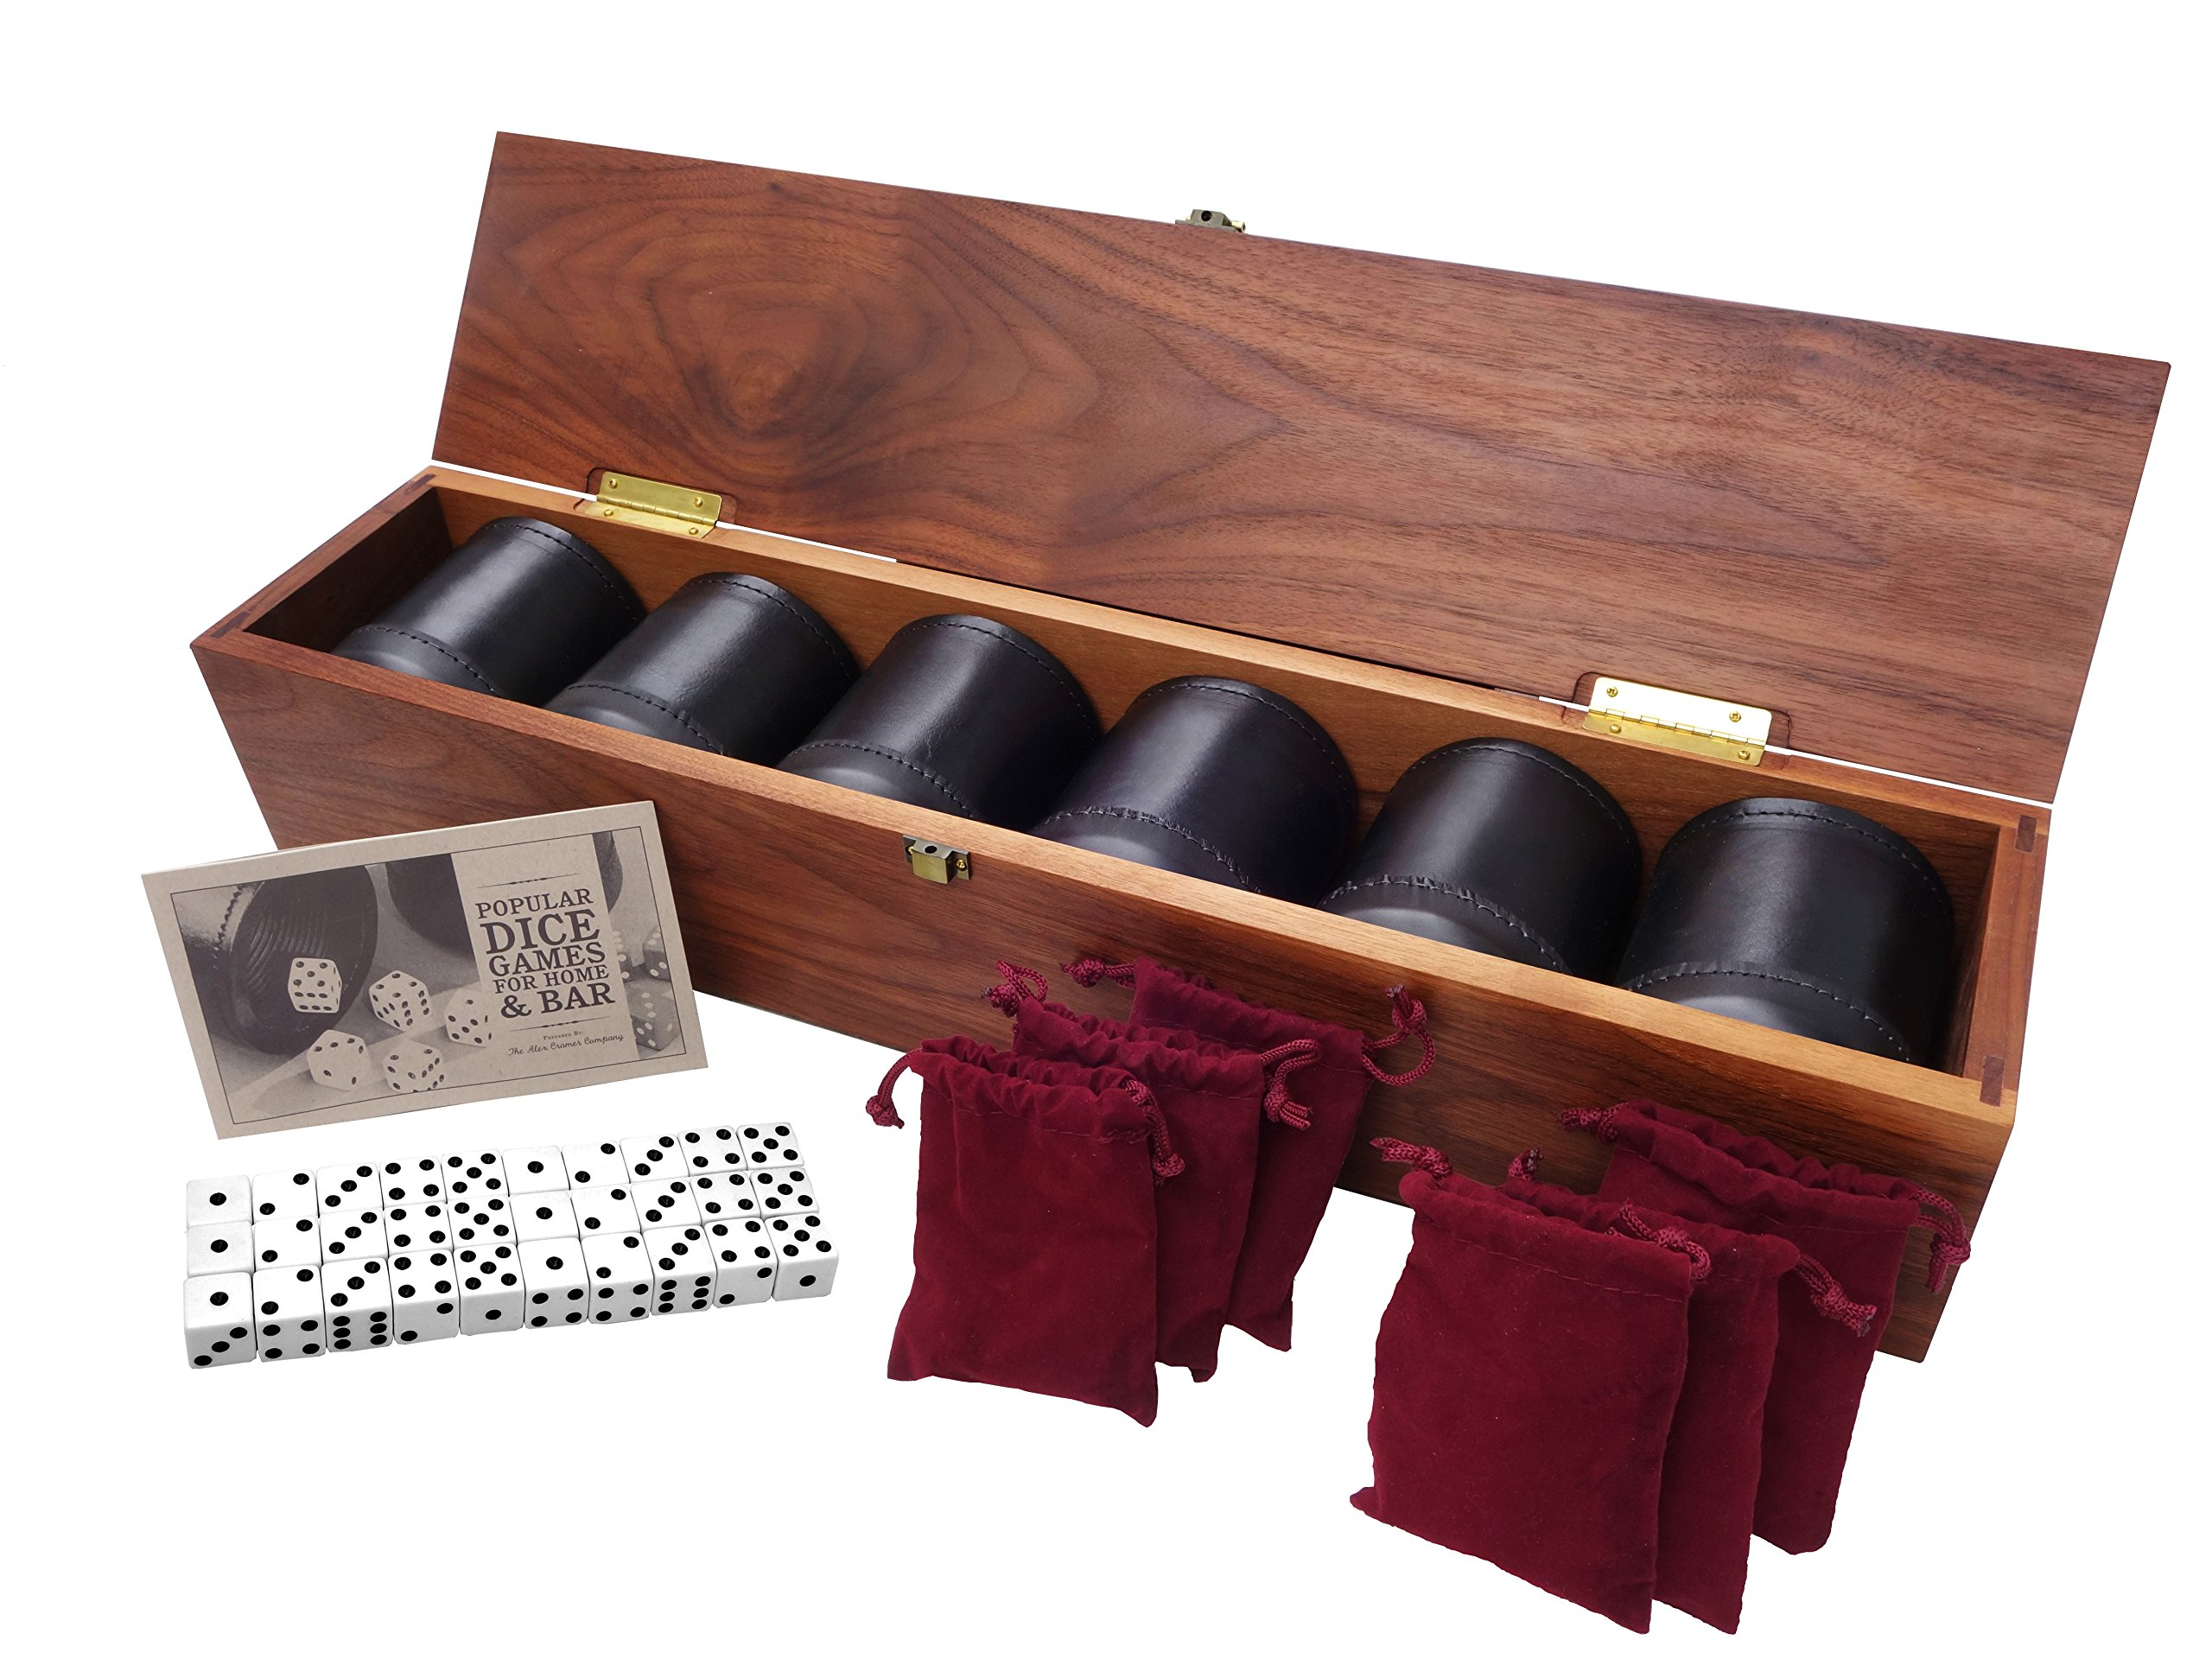 Golden Gate Dice Cup Set of Six in Walnut Presentation Case Includes Thirty Tuxedo Dice and a Book of Dice Games by Alex Cramer Company